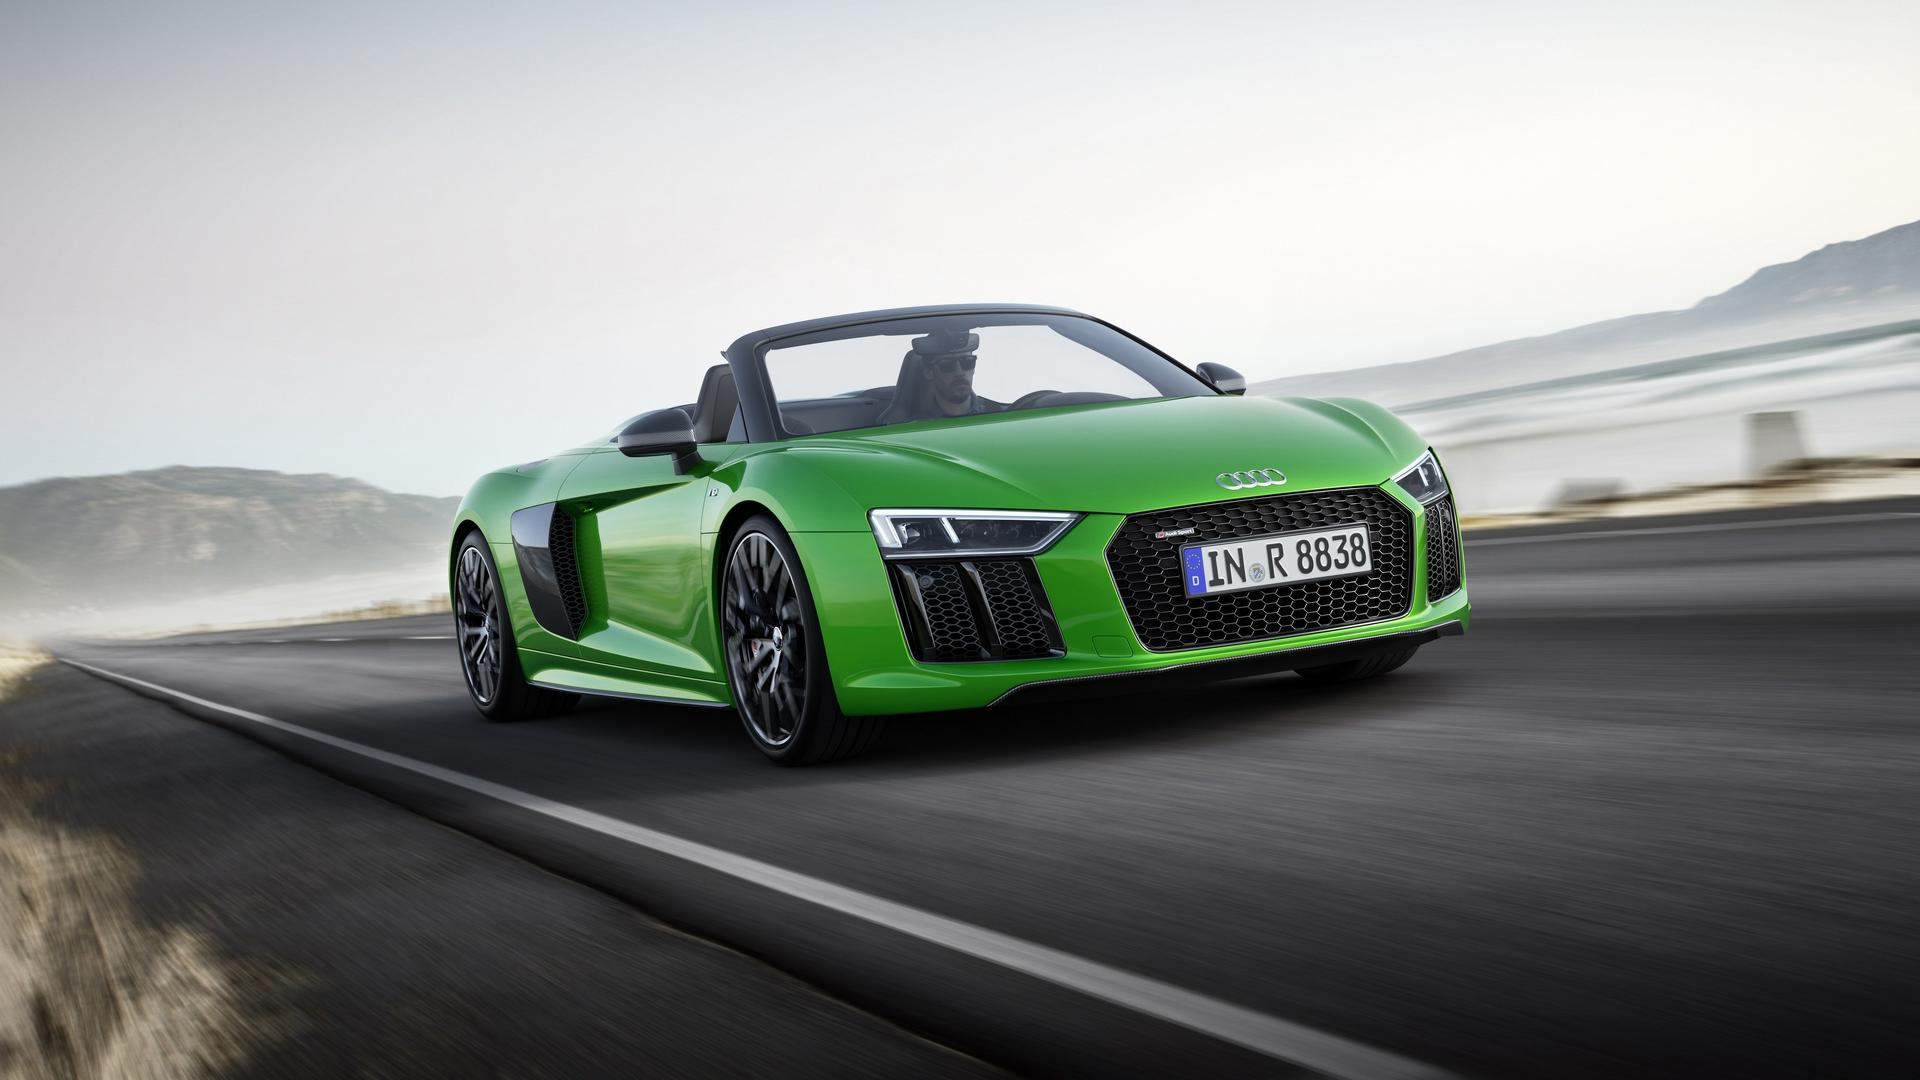 Audi R8 Spyder V10 Plus Is nd's Fastest Convertible Ever Made